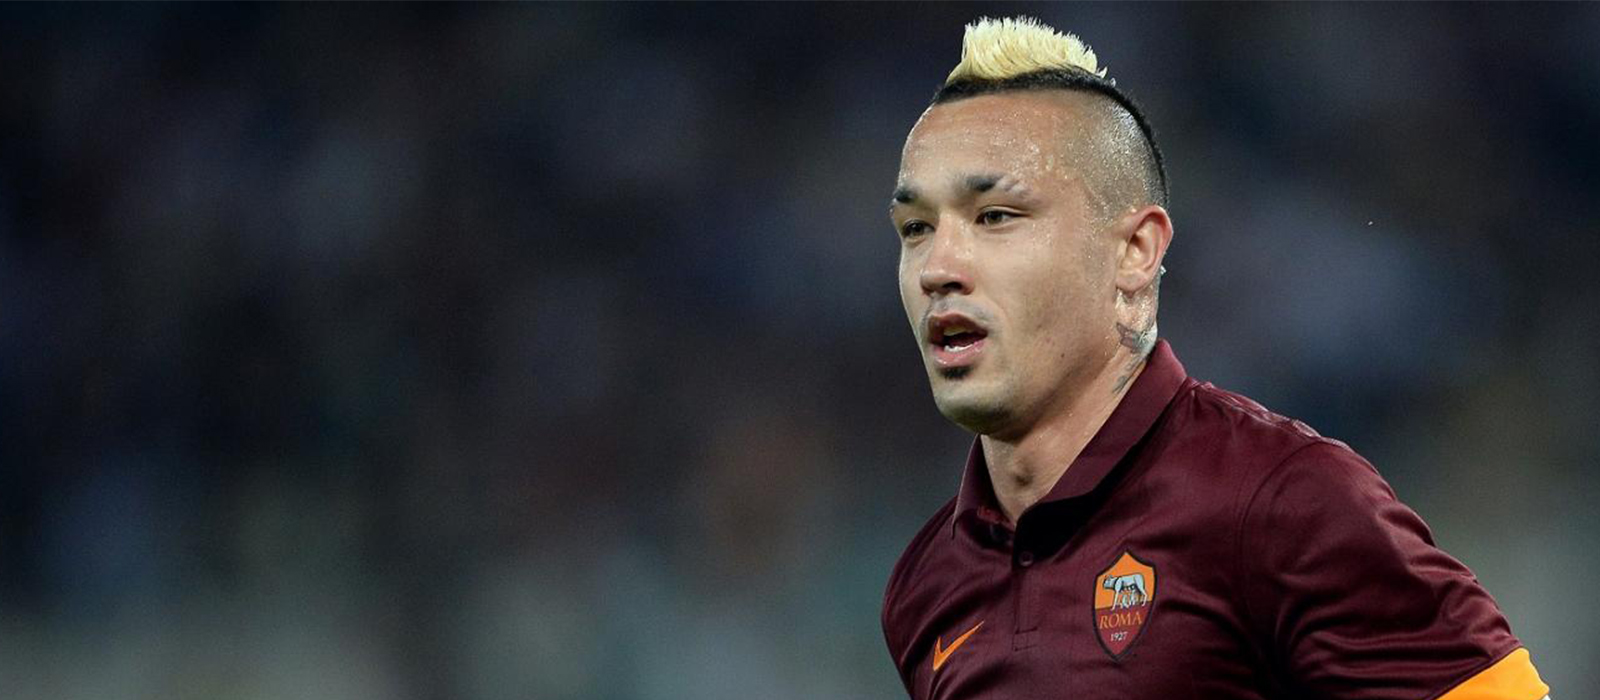 Manchester United send scouts to watch Radja Nainggolan and Saul Niguez – report